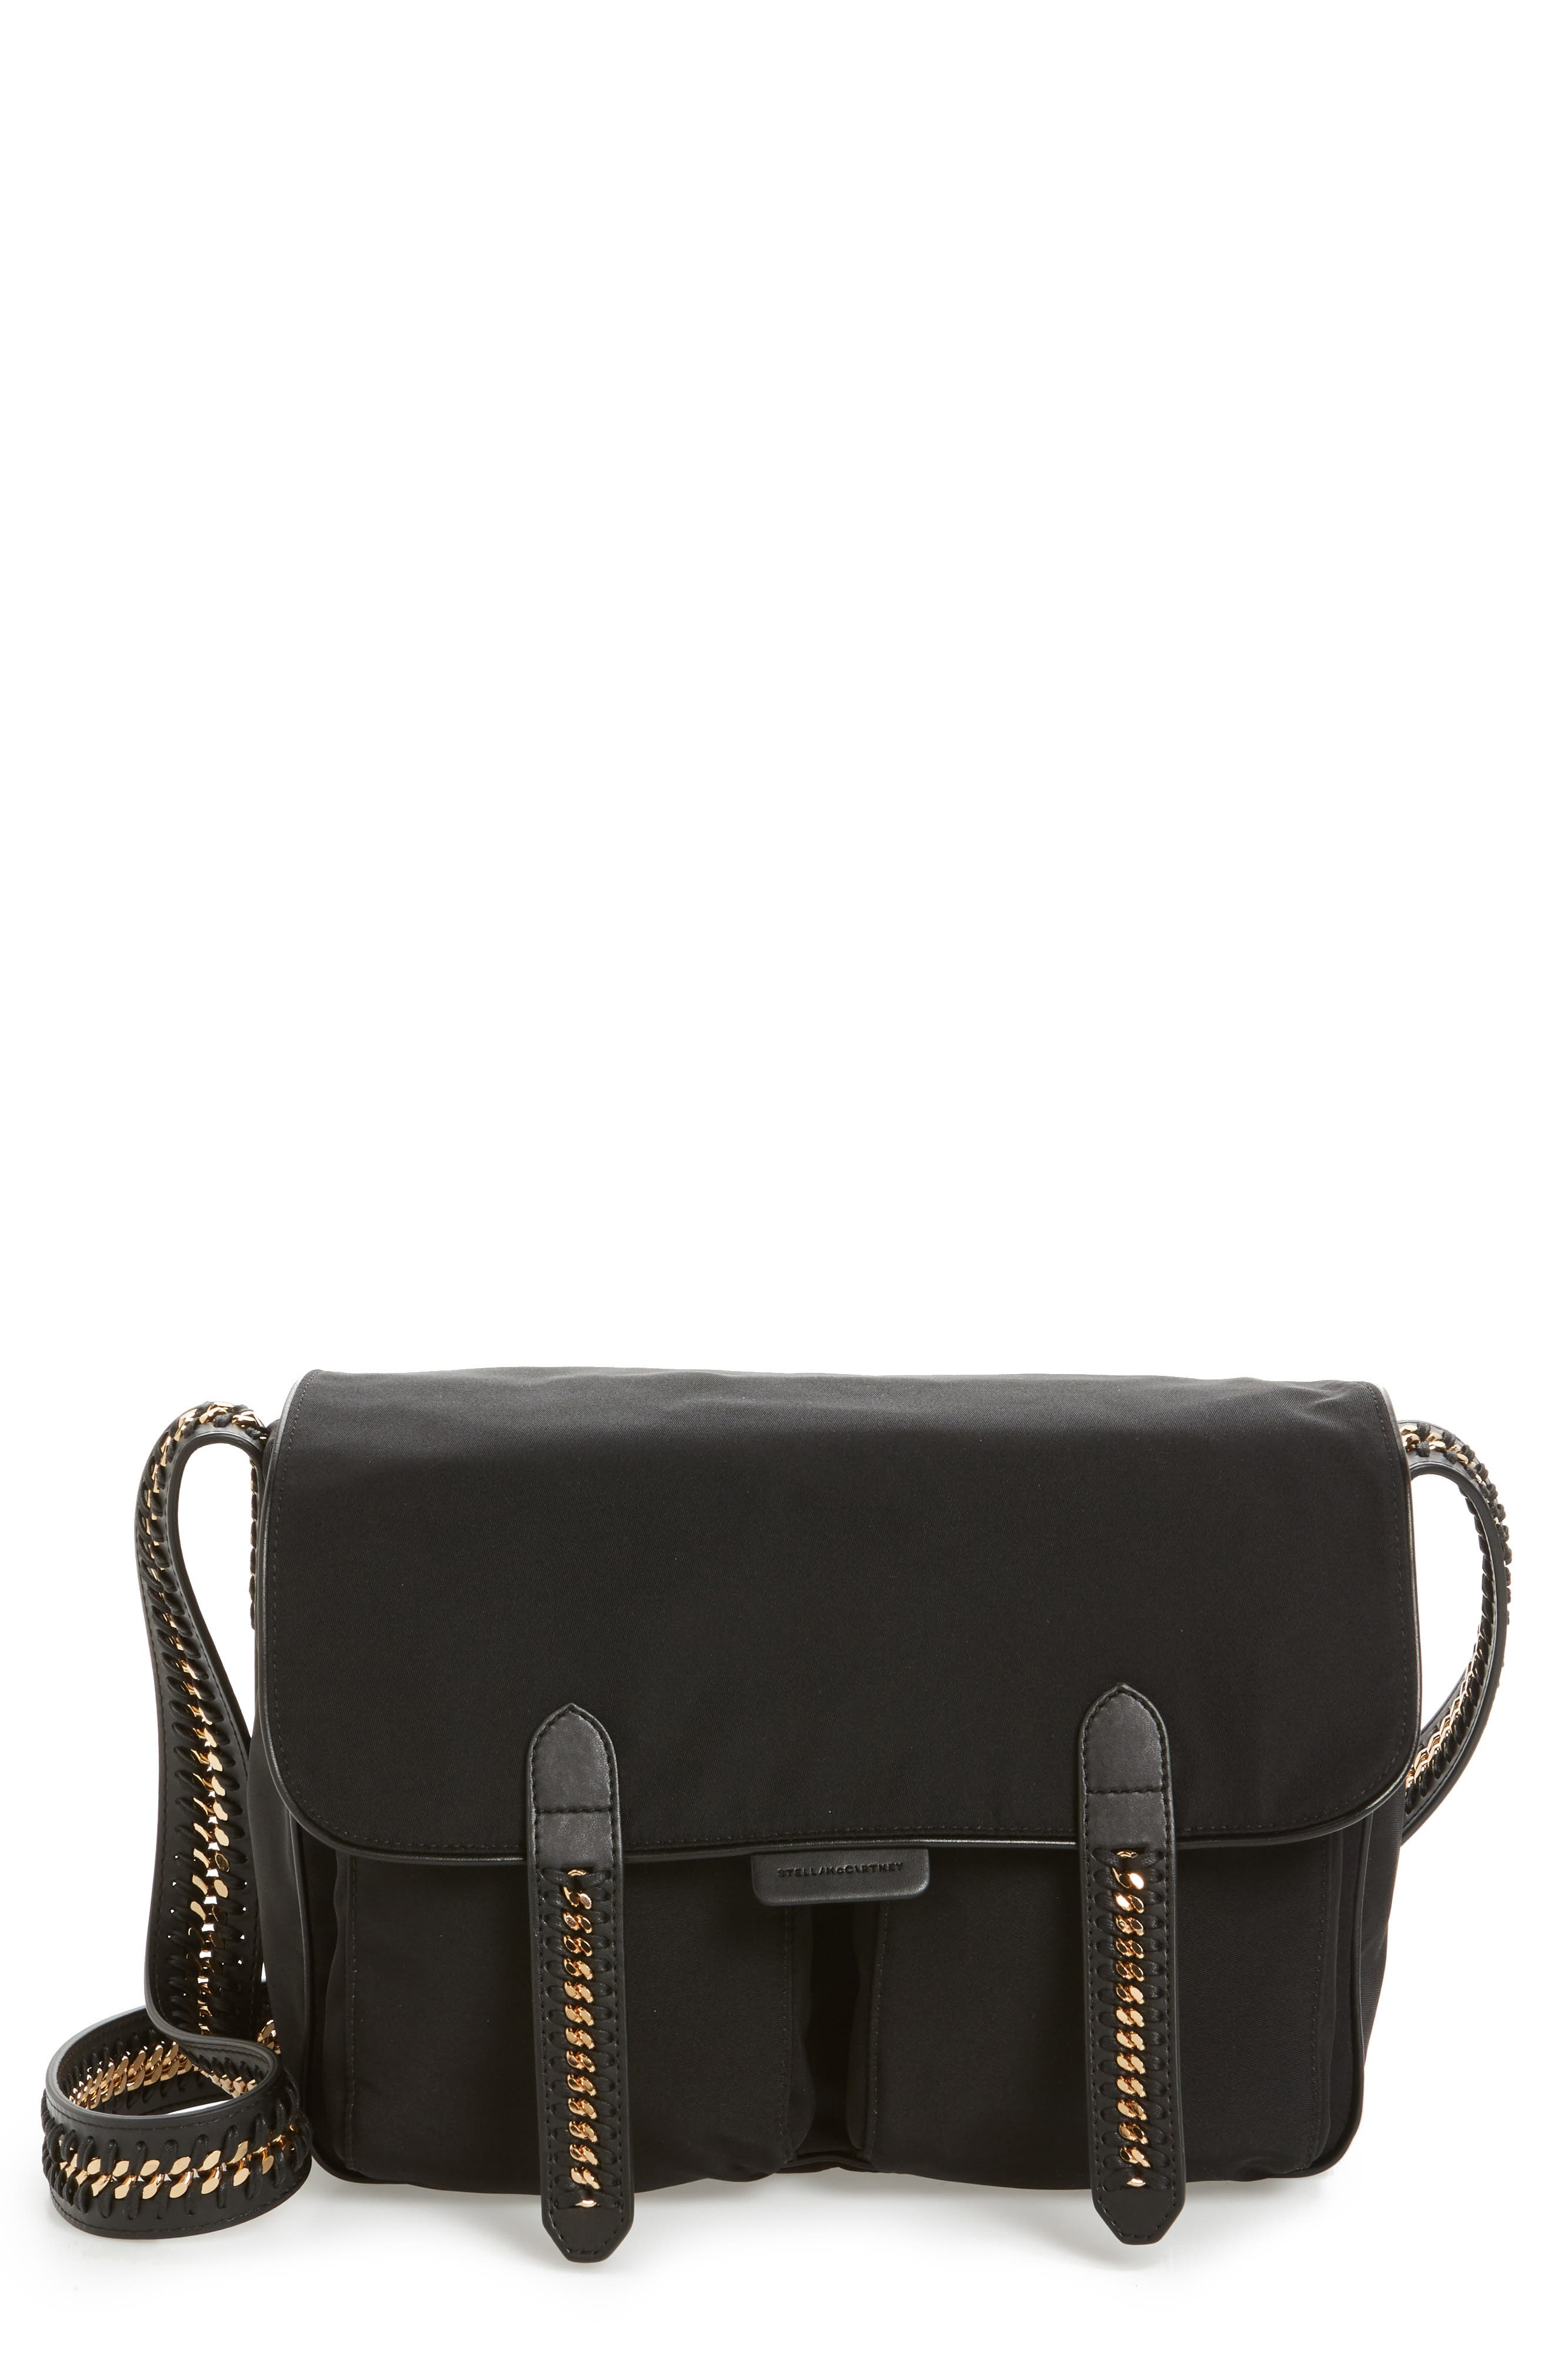 Main Image - Stella McCartney Falabella GO Messenger Bag